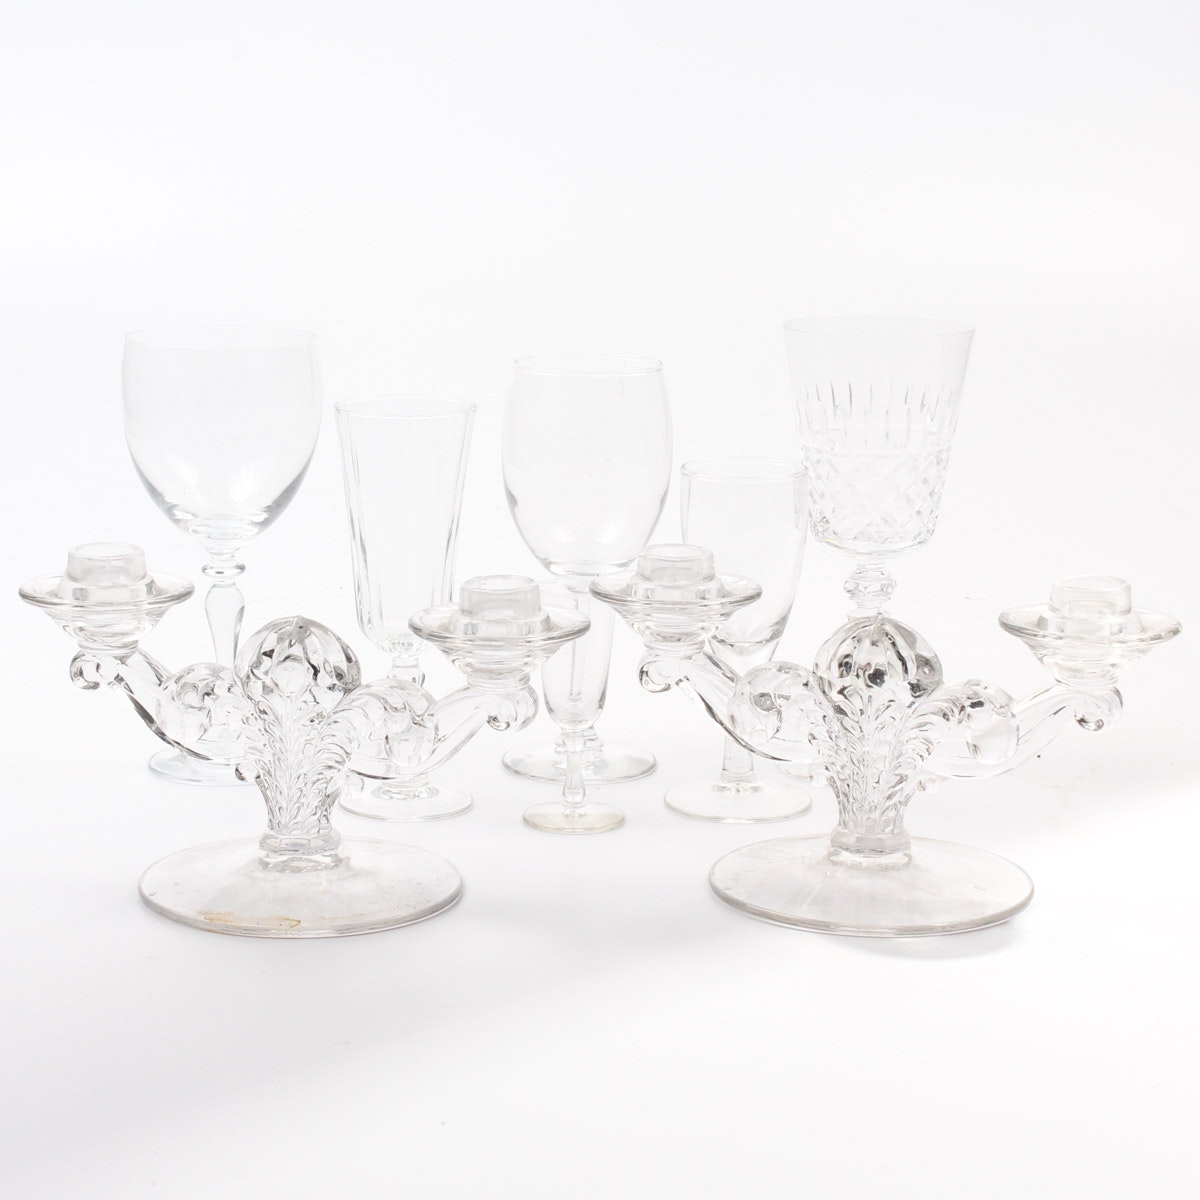 Glass and Crystal Stemware Collection